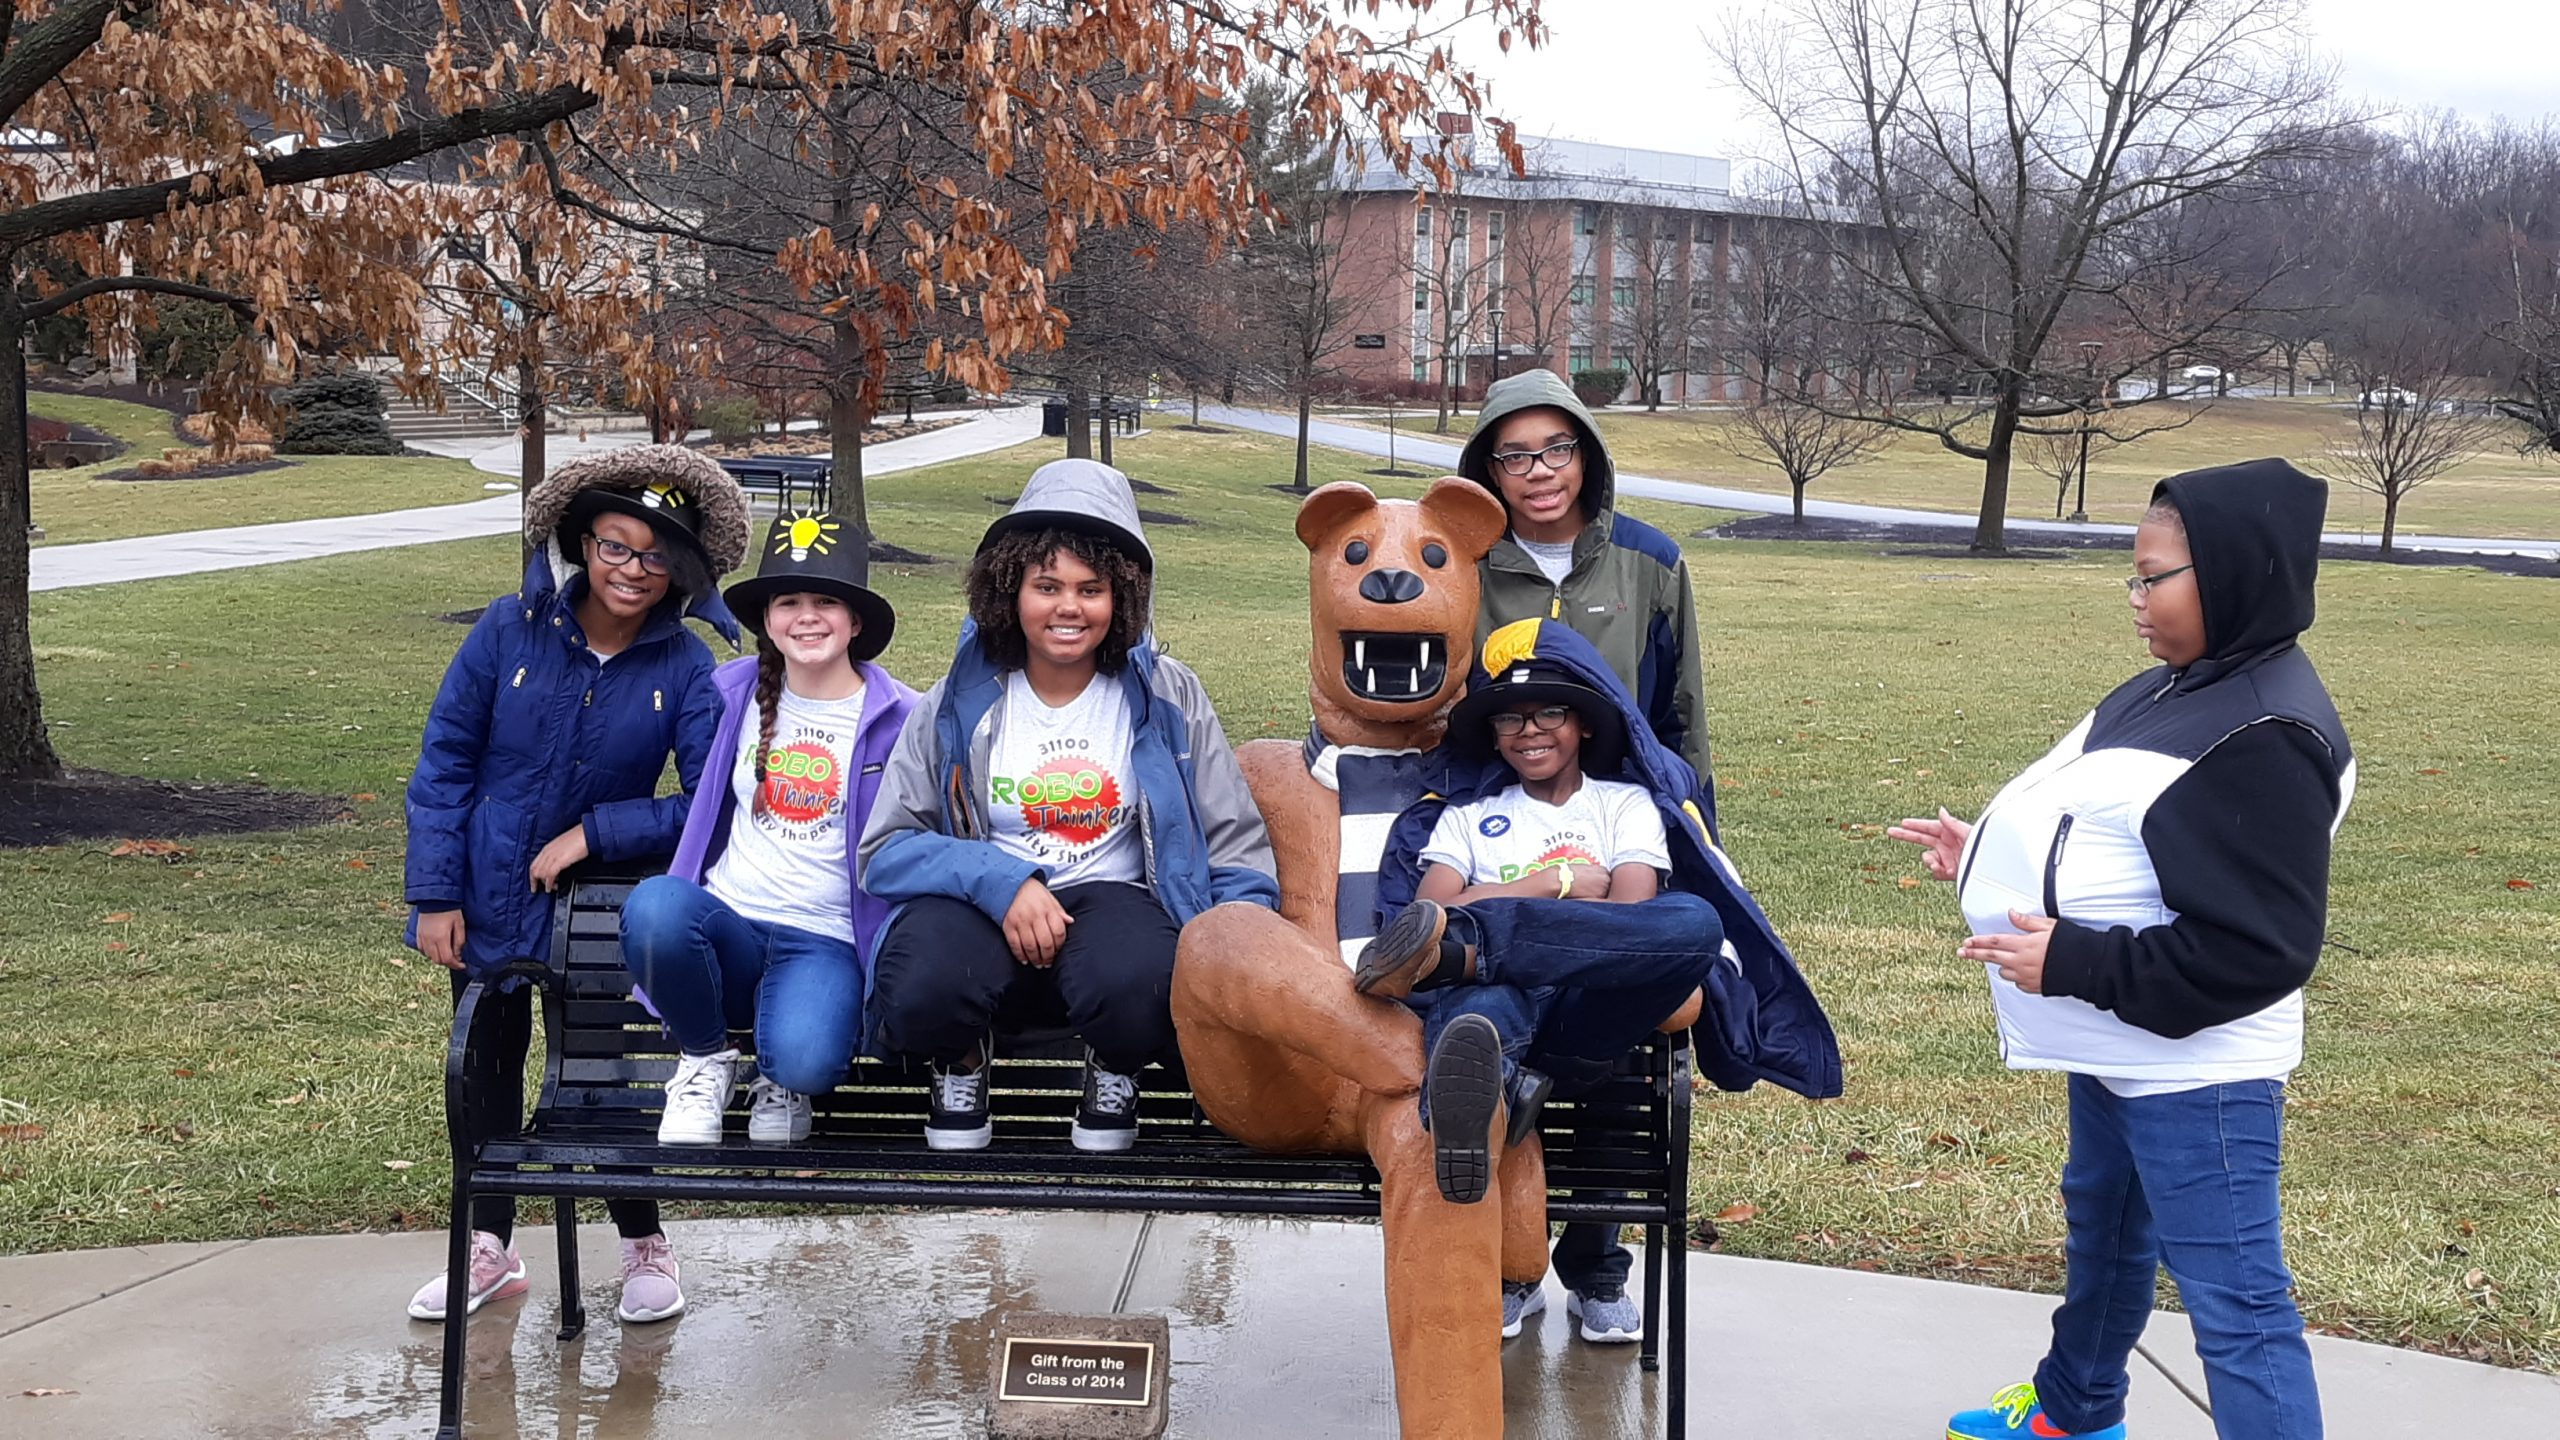 Posing with the Nittany Lion